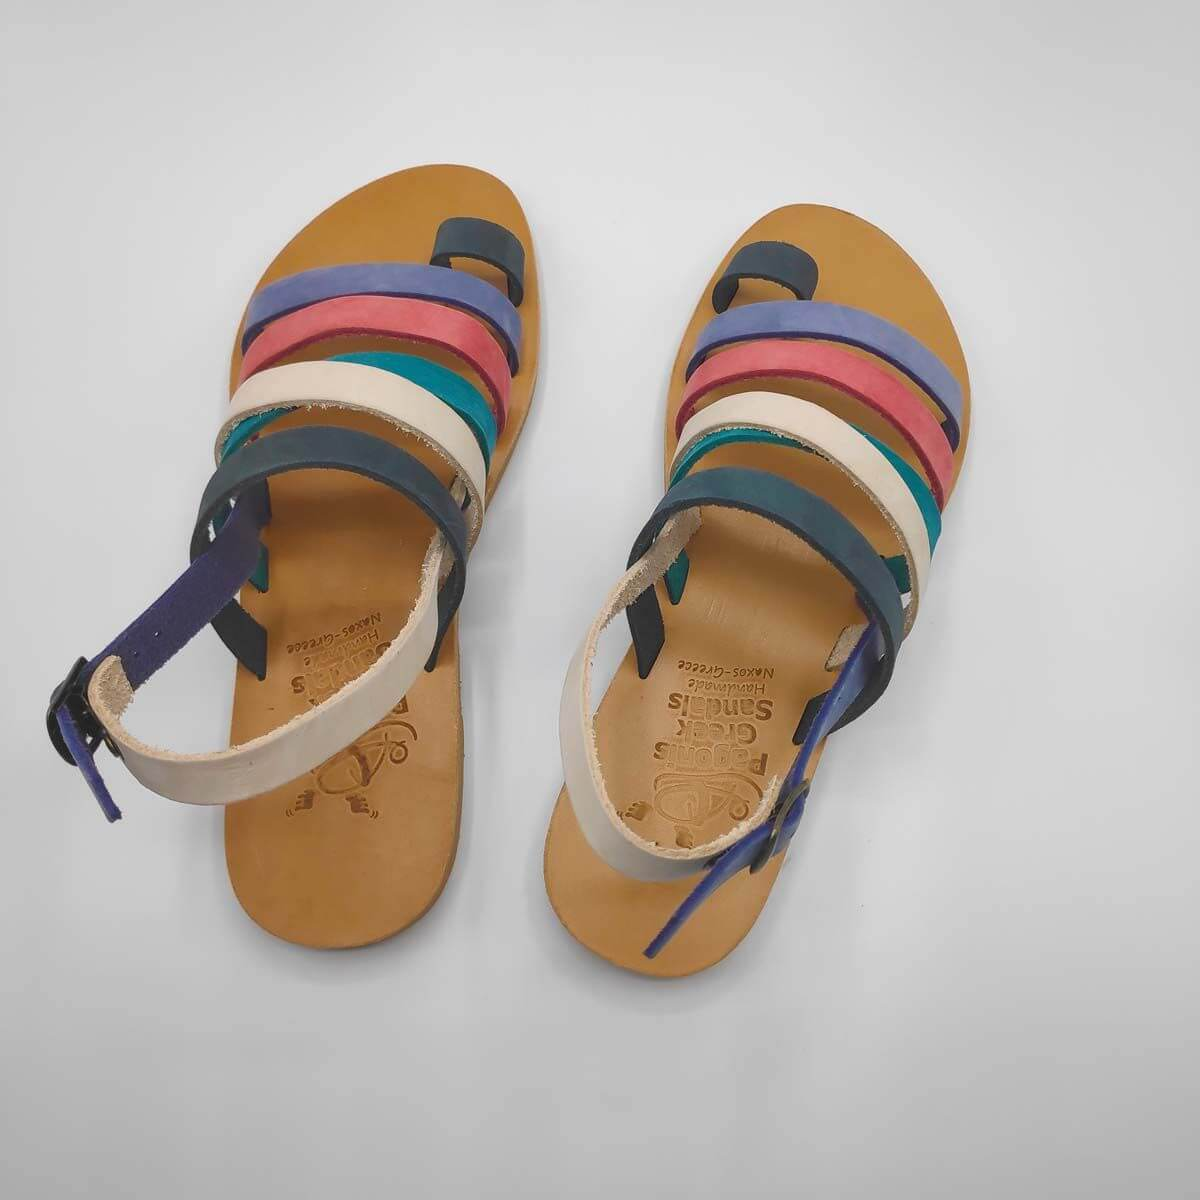 Colourful Strappy Leather Sandals with Toe Ring and Backstrap - Athena Back View